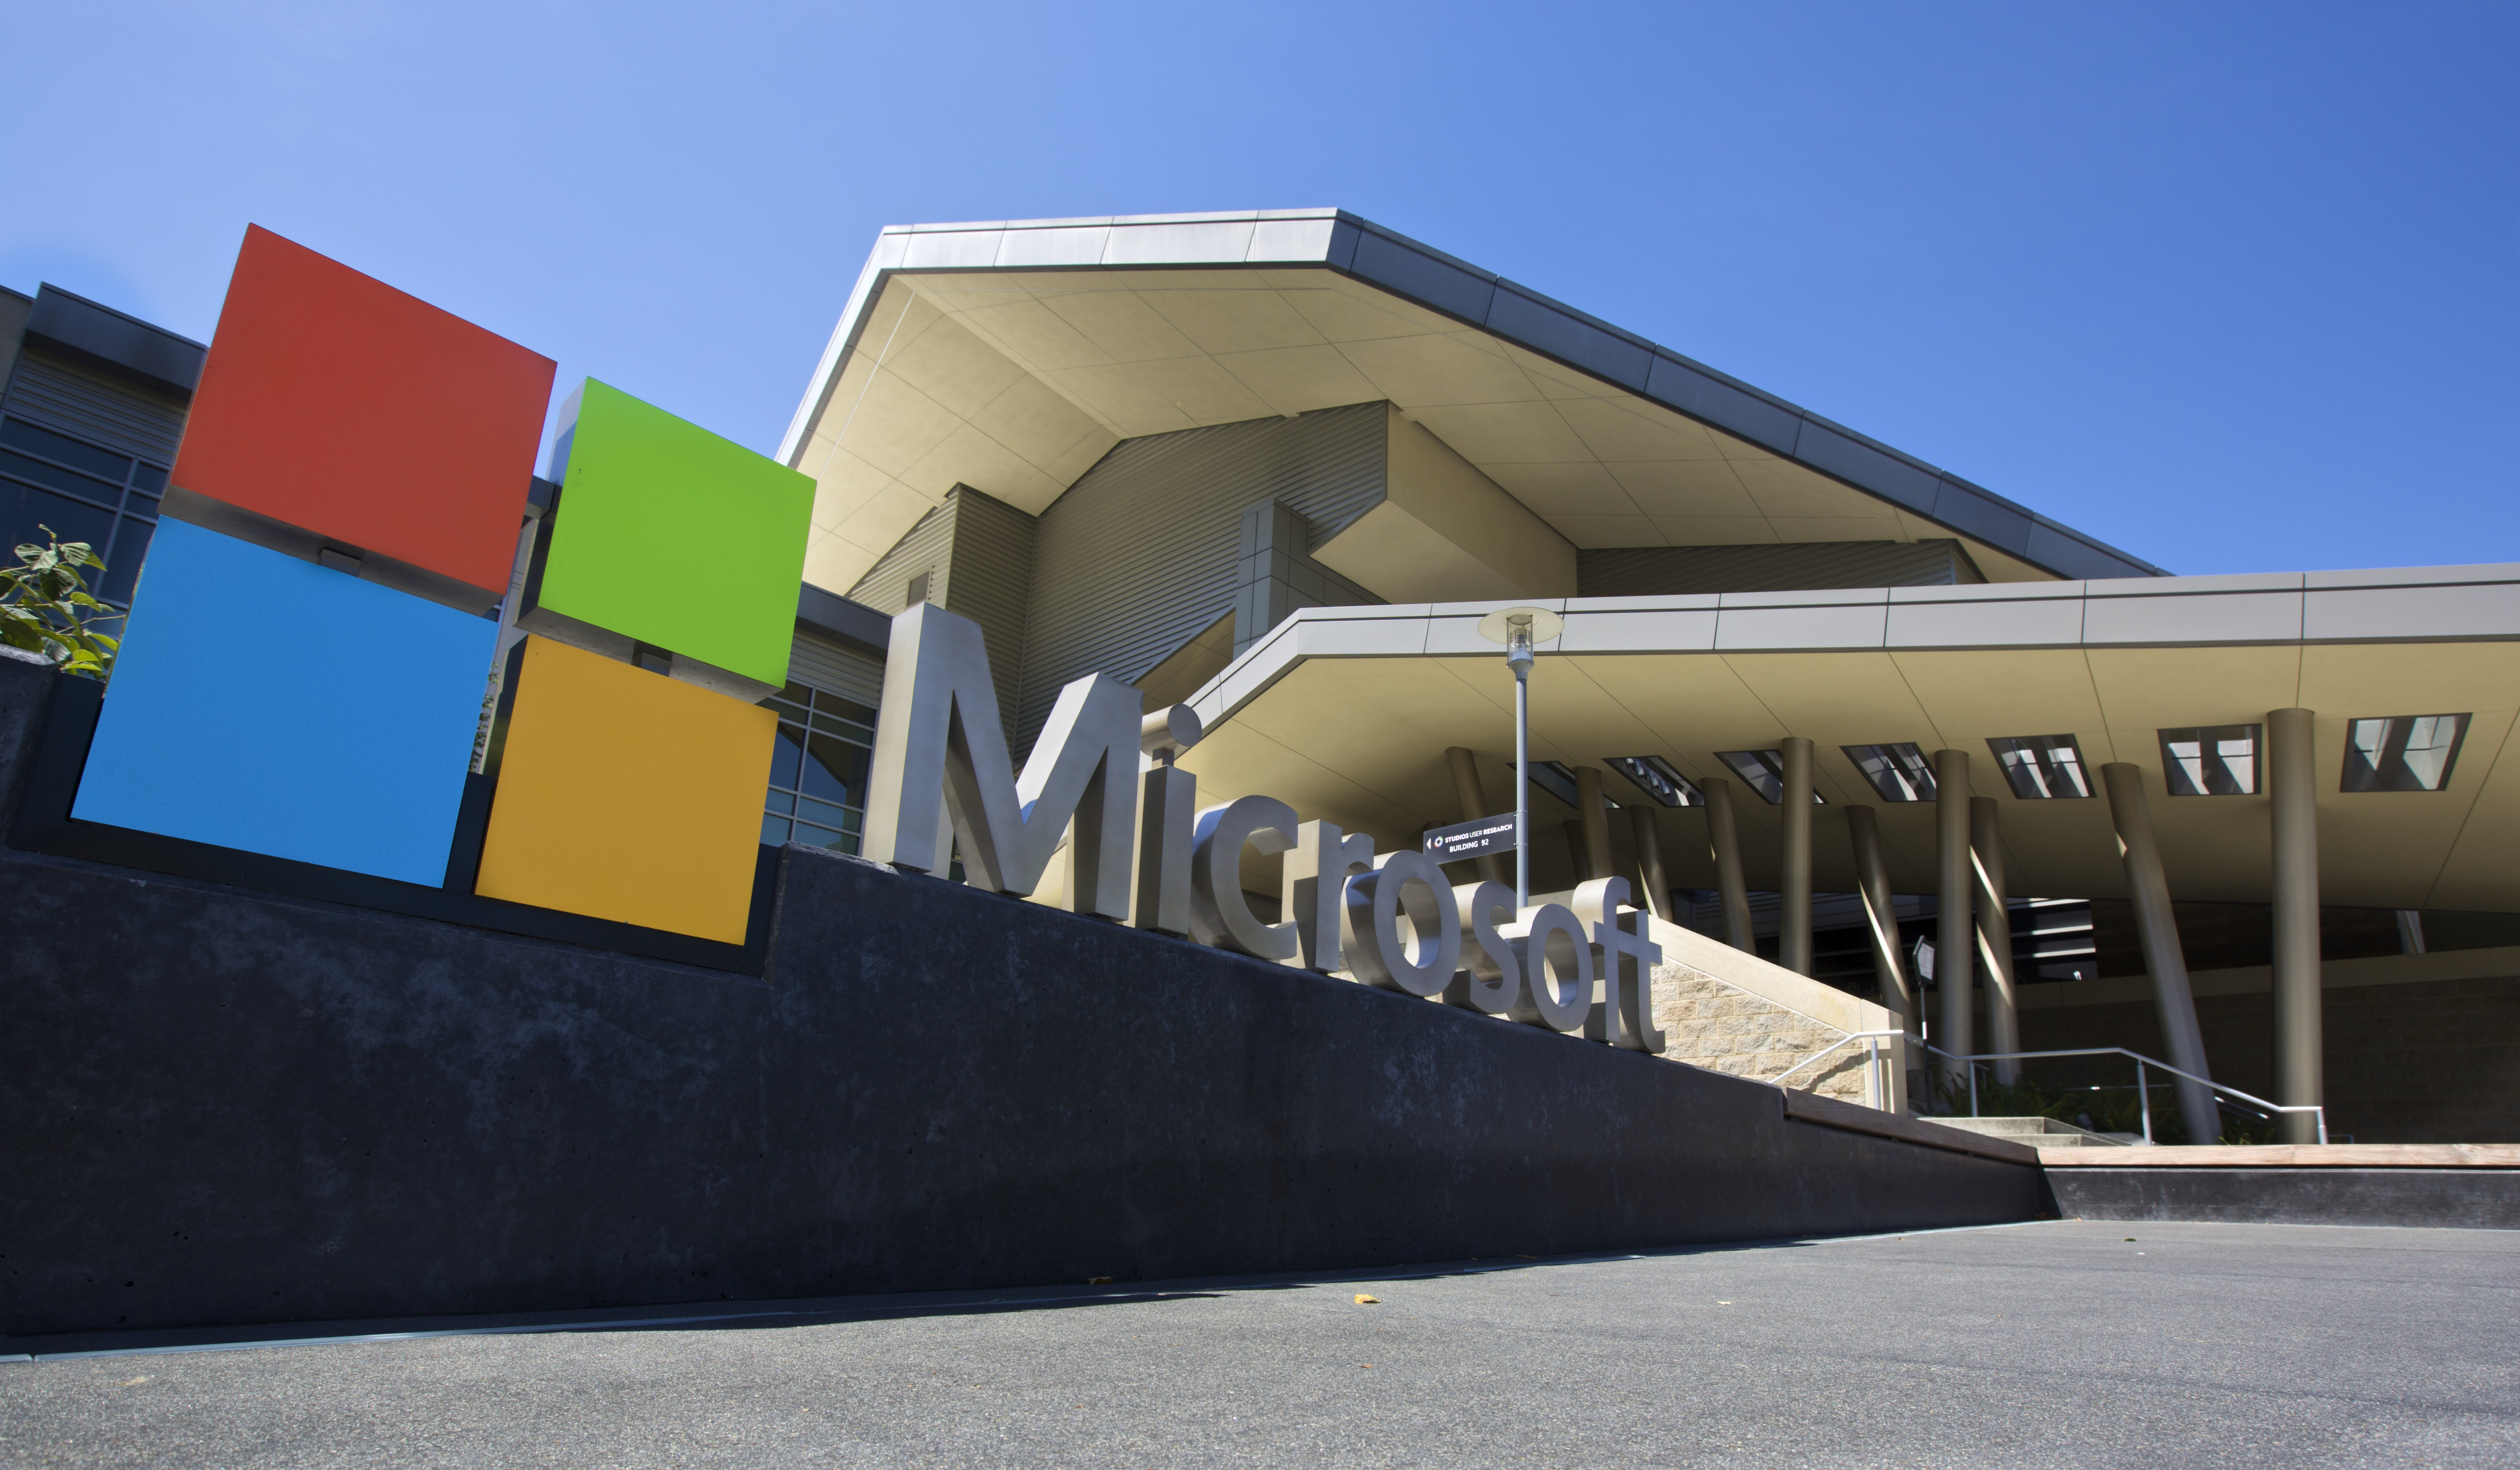 REDMOND, WASHINGTON - JULY 17: The Visitor's Center at Microsoft Headquarters campus is pictured July 17, 2014 in Redmond, Washington. Microsoft CEO Satya Nadella announced, July 17, that Microsoft will cut 18,000 jobs, the largest layoff in the company's history. (Stephen Brashear/Getty Images)